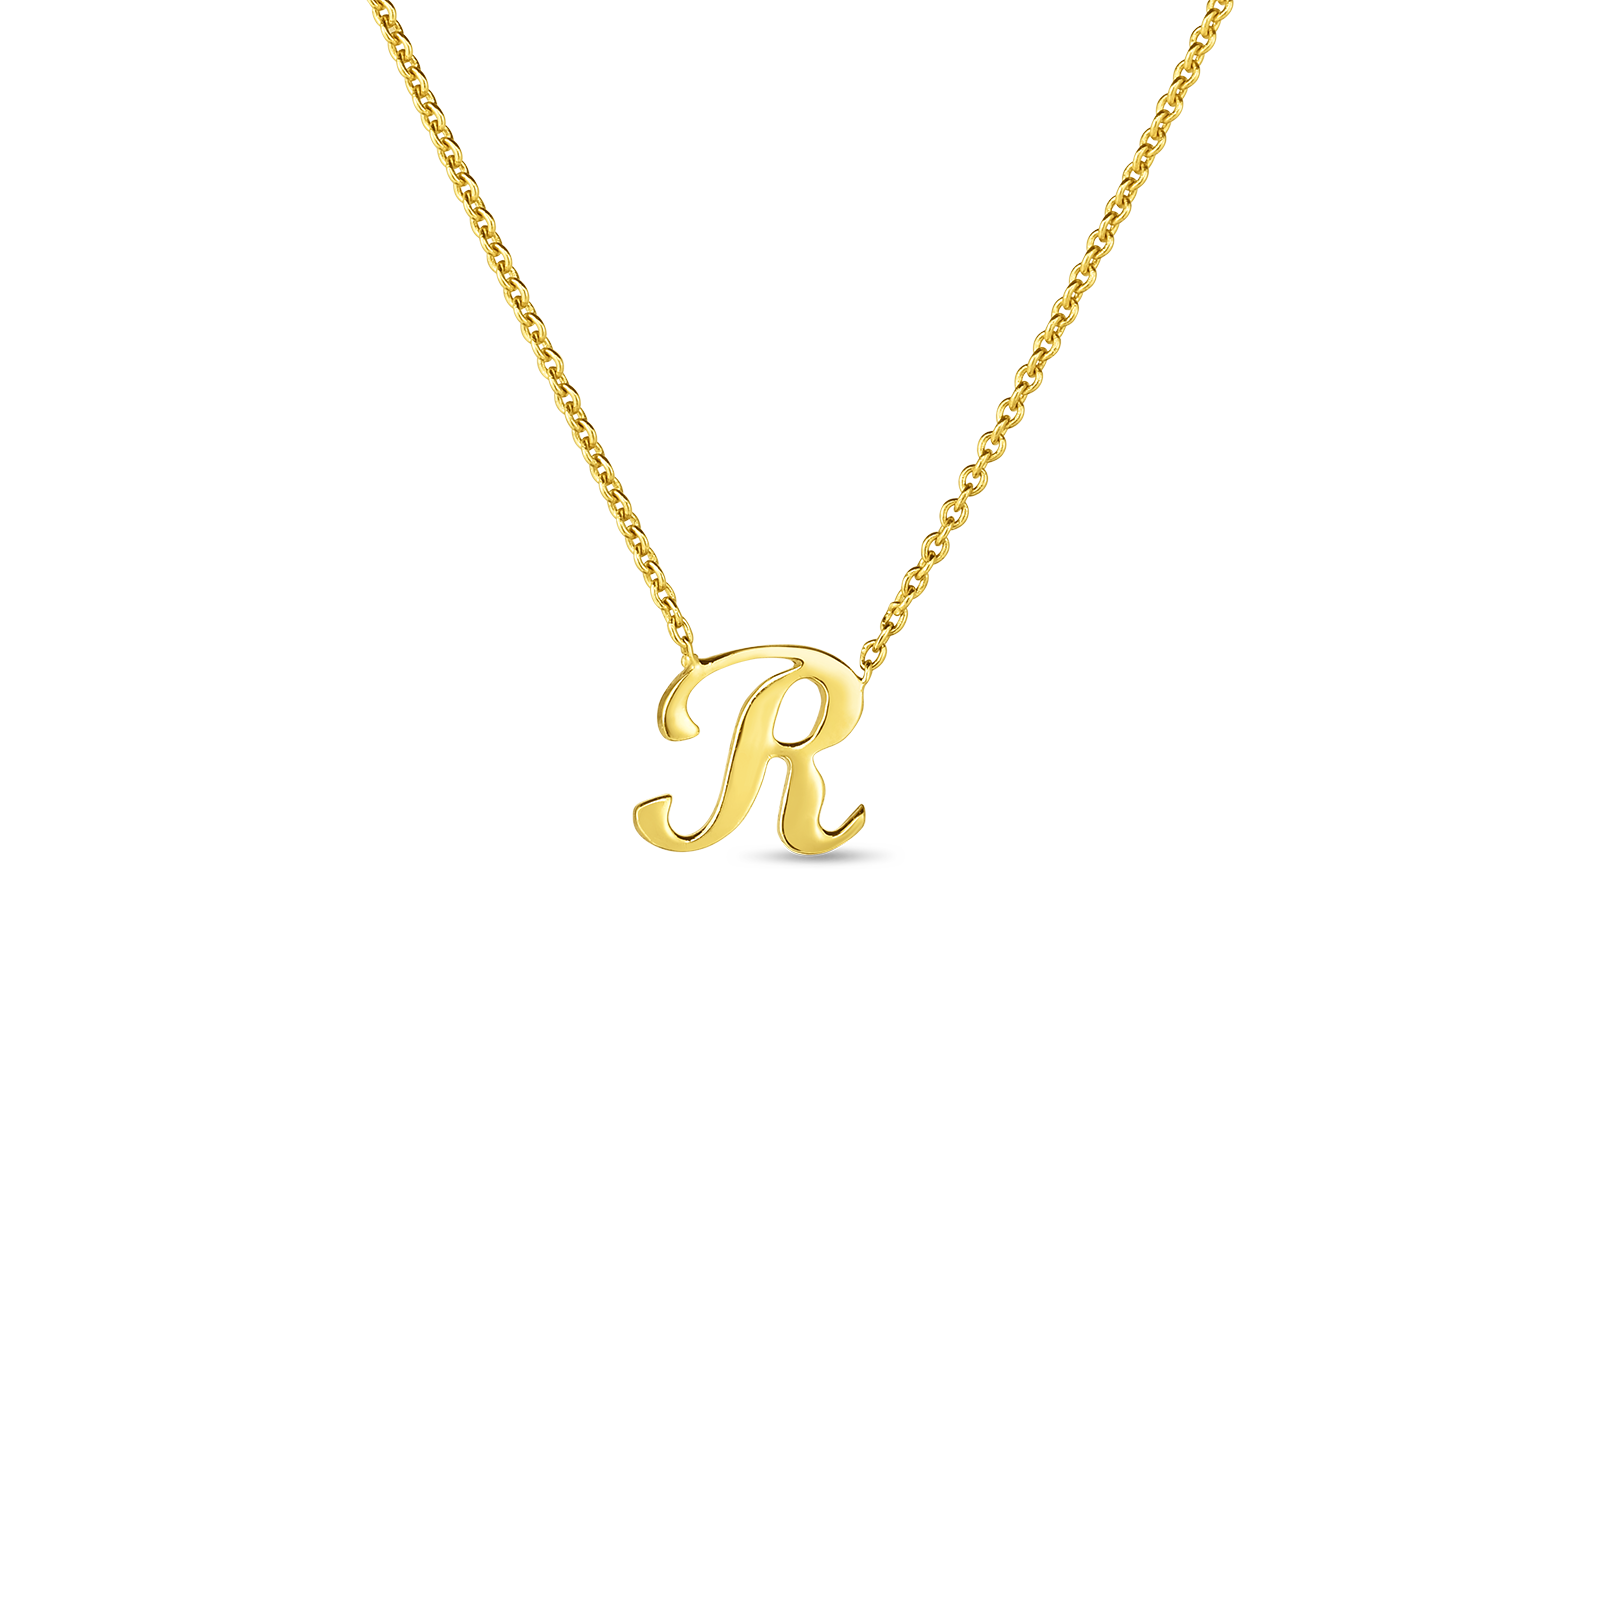 18k Small Script Initial 'R' Pendant On Chain